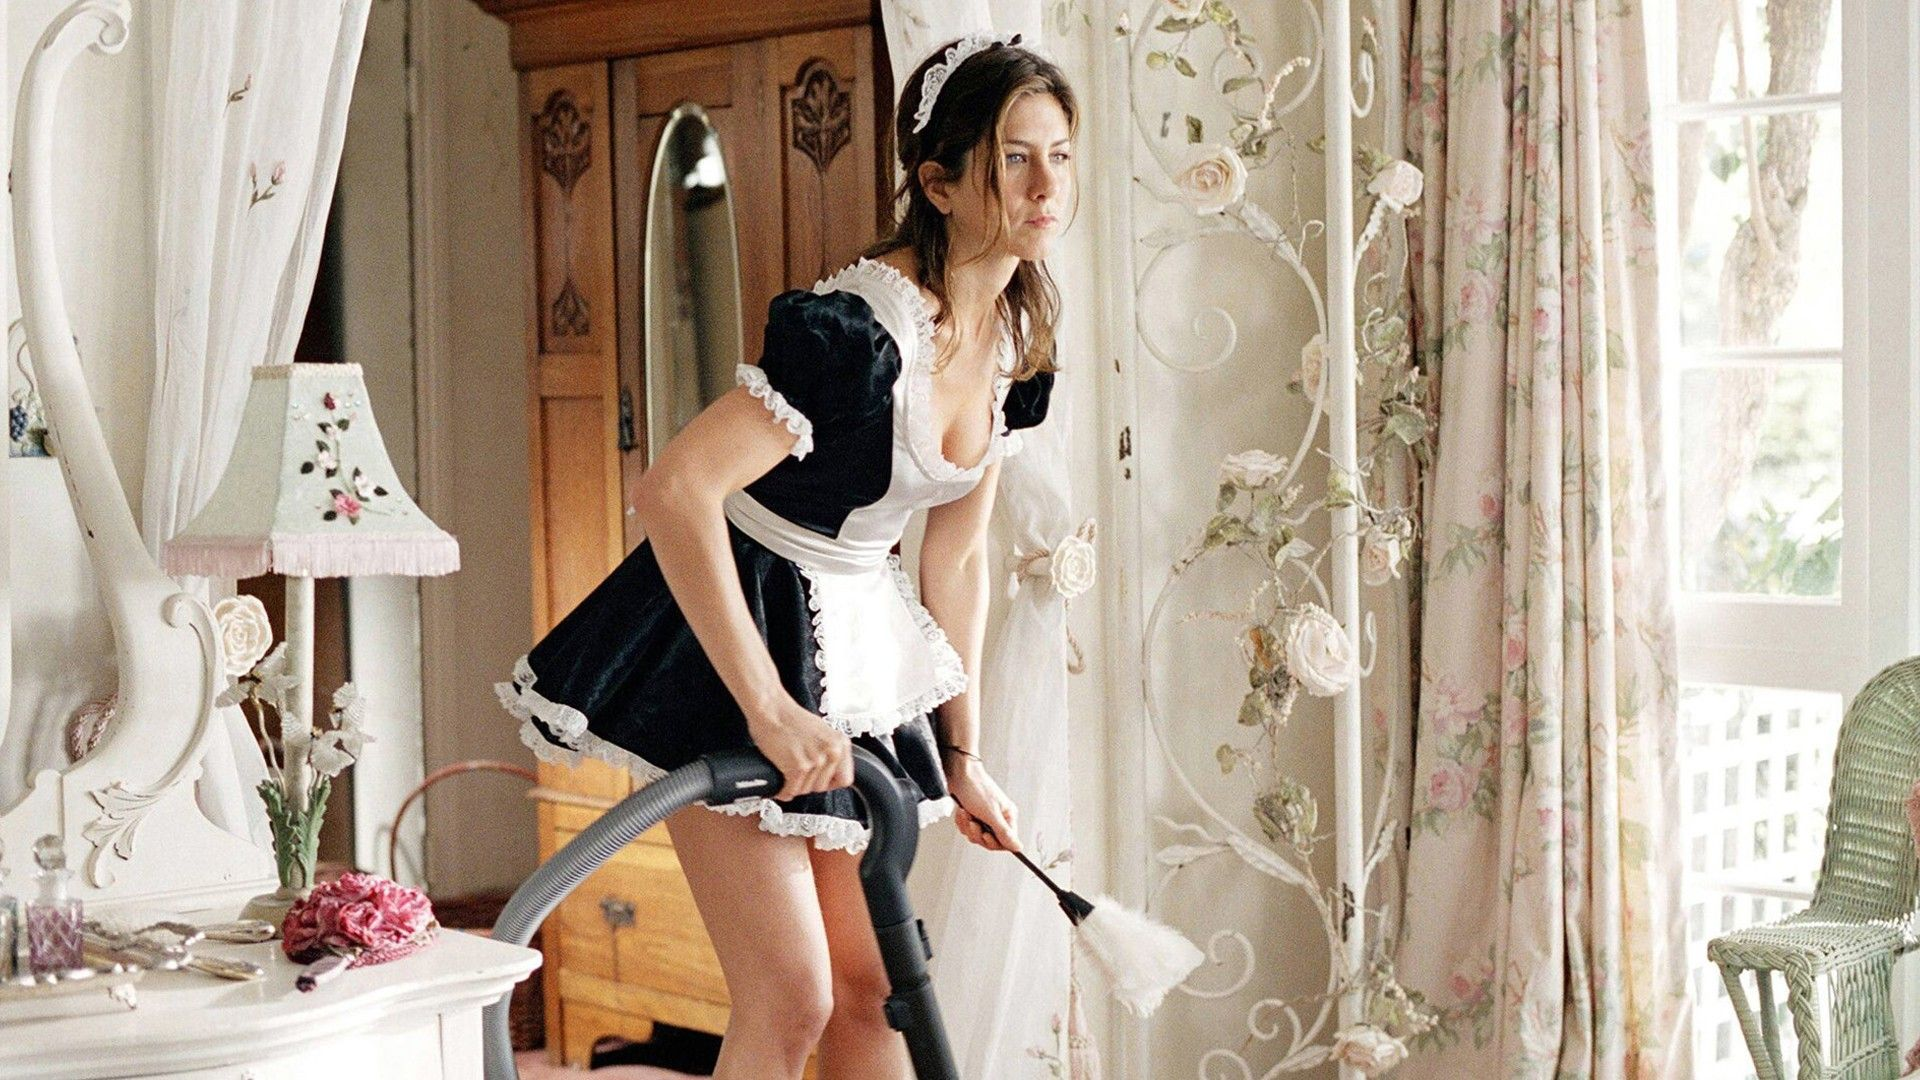 People 1920x1080 Jennifer Aniston Maid Outfit French Maid Bedroom